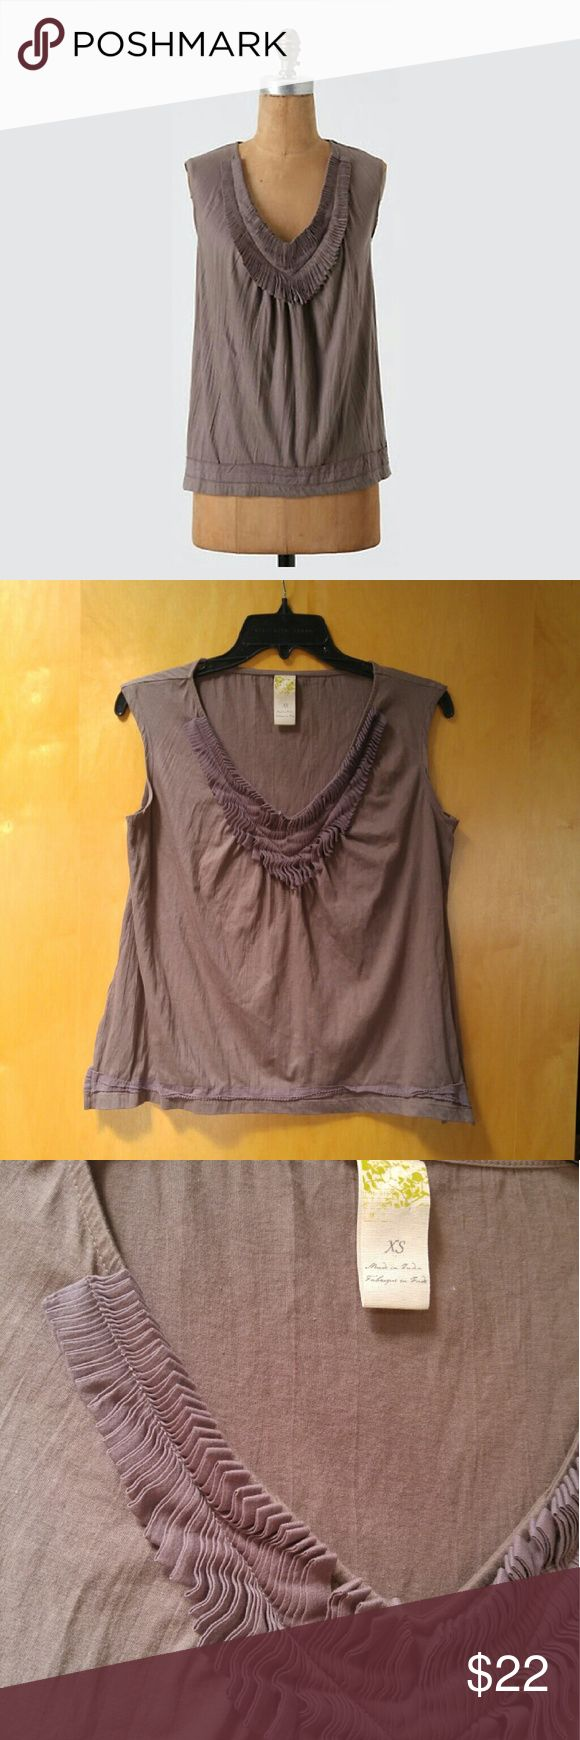 """Anthropologie C Keer Mane Event Tank C Keer brand from Anthropologie, size (XS) extra small, in excellent condition! Only has minor pilling from wear and wash. Color is a brownish, purplish, grayish. V-neck is adorned with folded ribbon. This unique sleeveless top could be easily dressed up or down! Has details on bottom hem and side slits. Measurements are 18"""" pit to pit and 22"""" length. May also fit a size (S) small. Cover photo from Anthro website. Please ask any questions. No trades. Make…"""